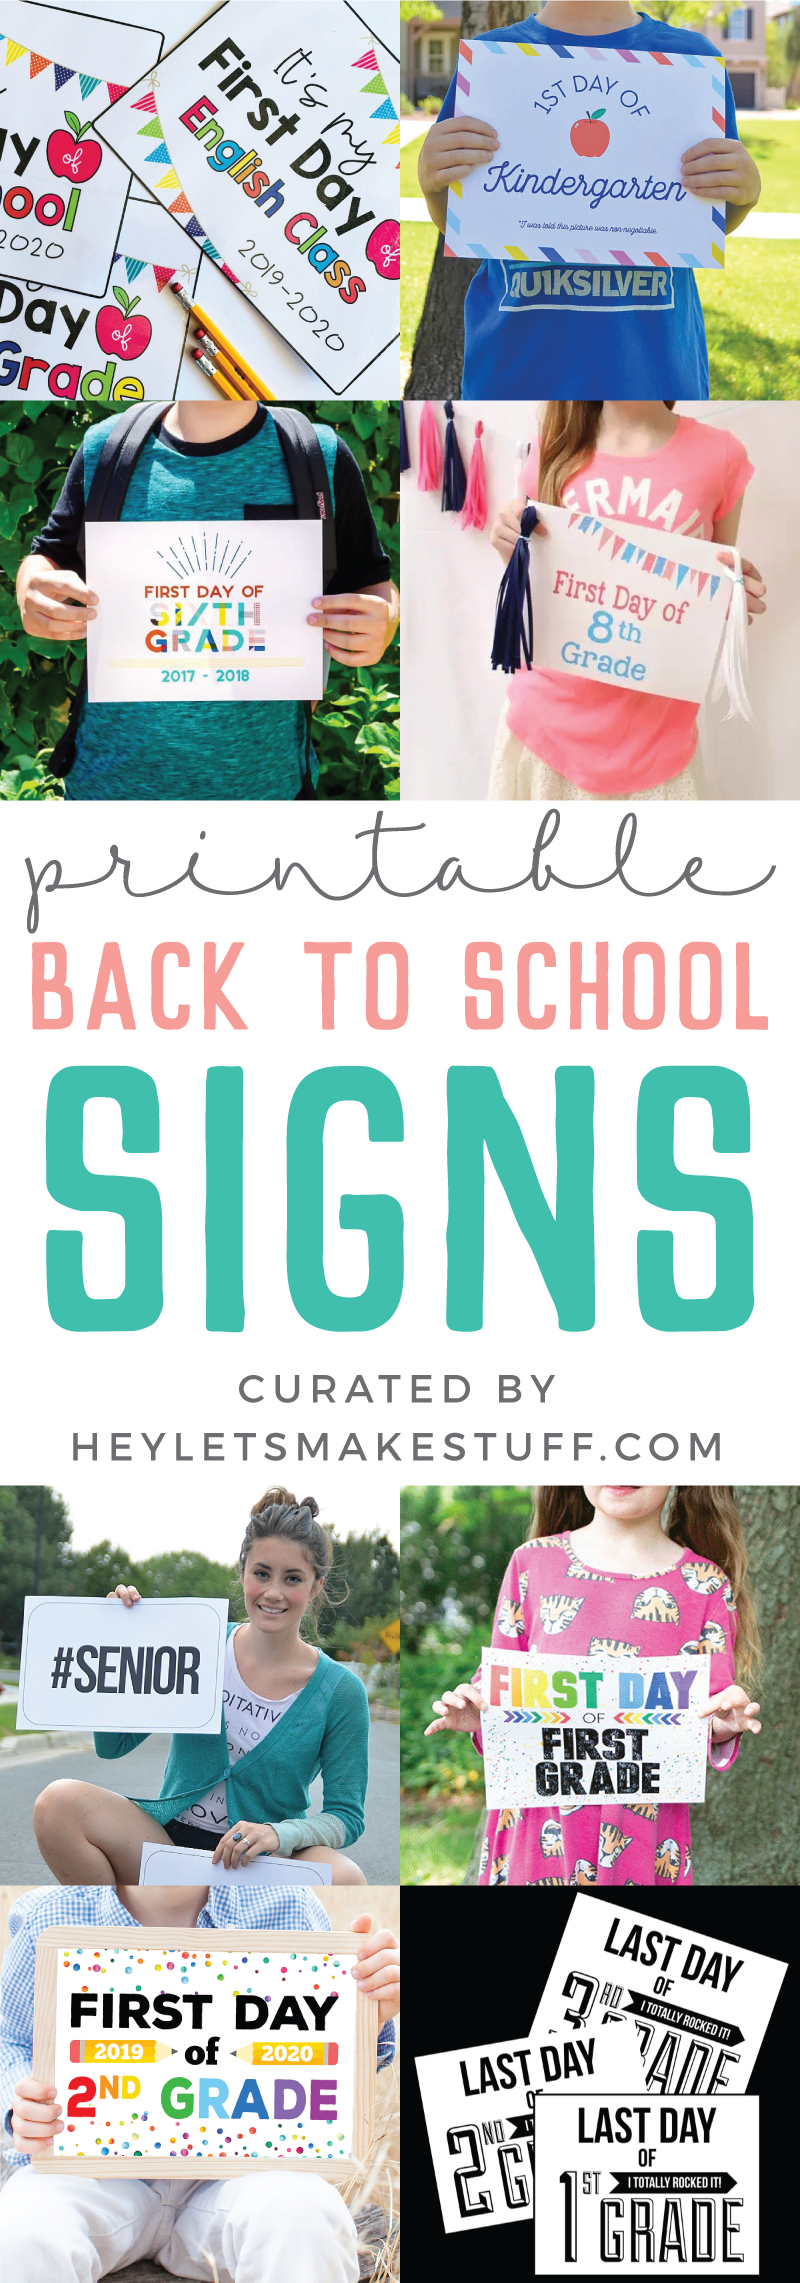 School is back in session! Capture all those amazing and memorable 1st day pics with this awesome collection of Printable First Day of School Signs.  via @heyletsmakestuf